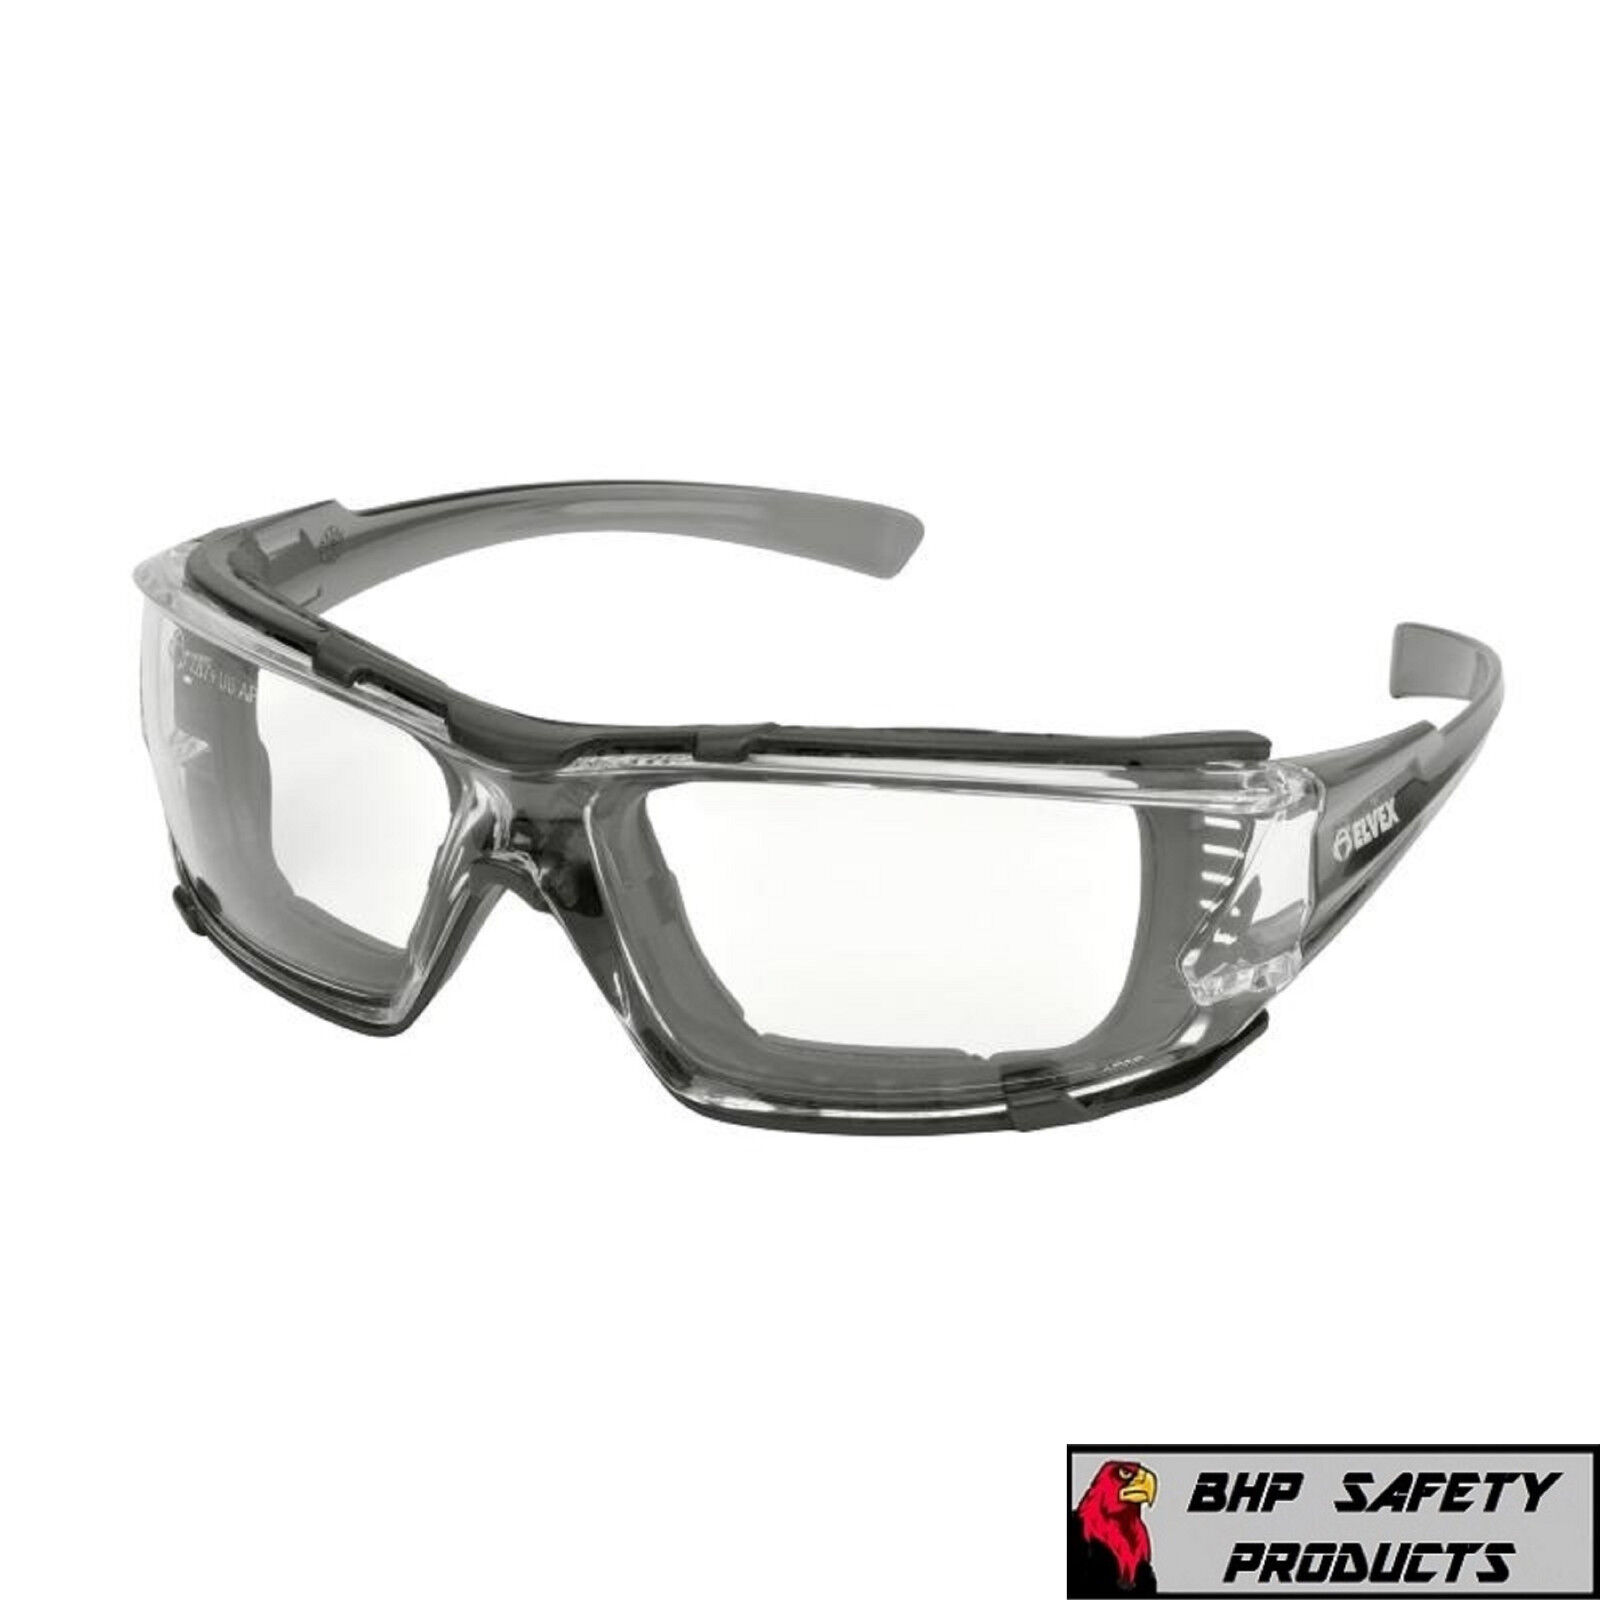 Elvex Go Specs IV Safety/Glasses/Goggles Clear A/F Dark Gray